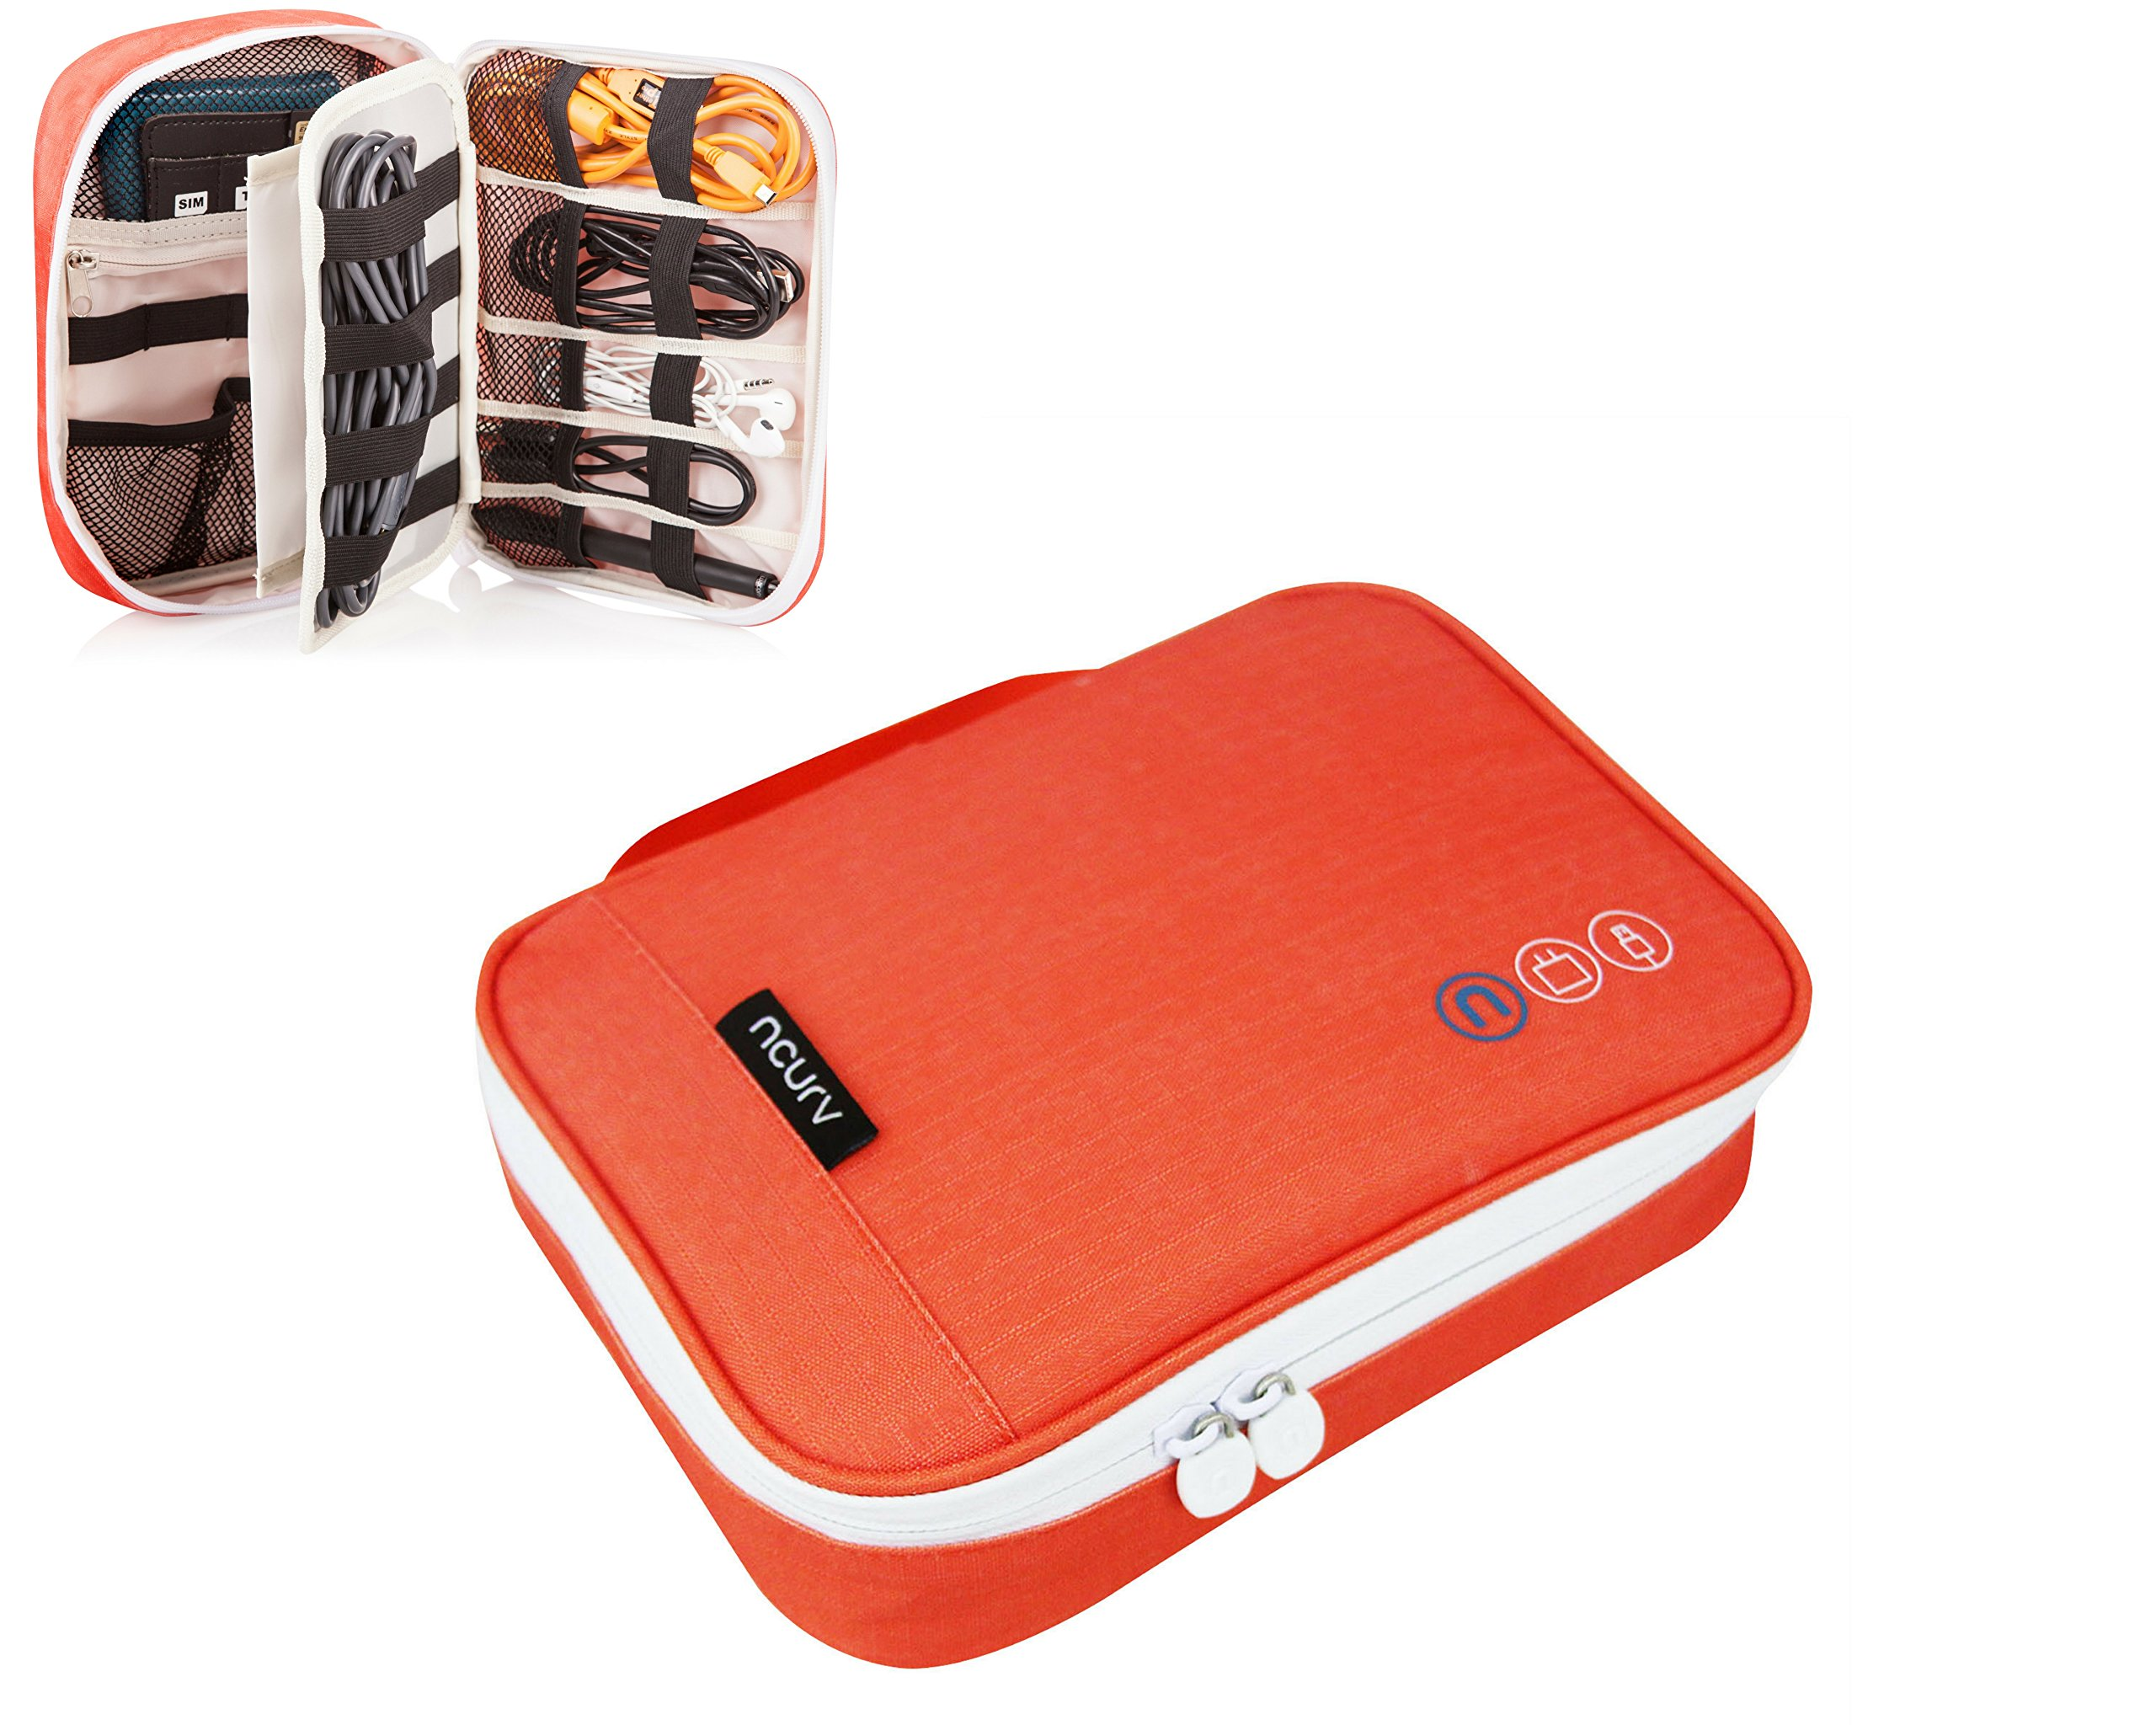 Travel Cord Organizer - Cord Holder by NCURV- Use it as iPhone ...